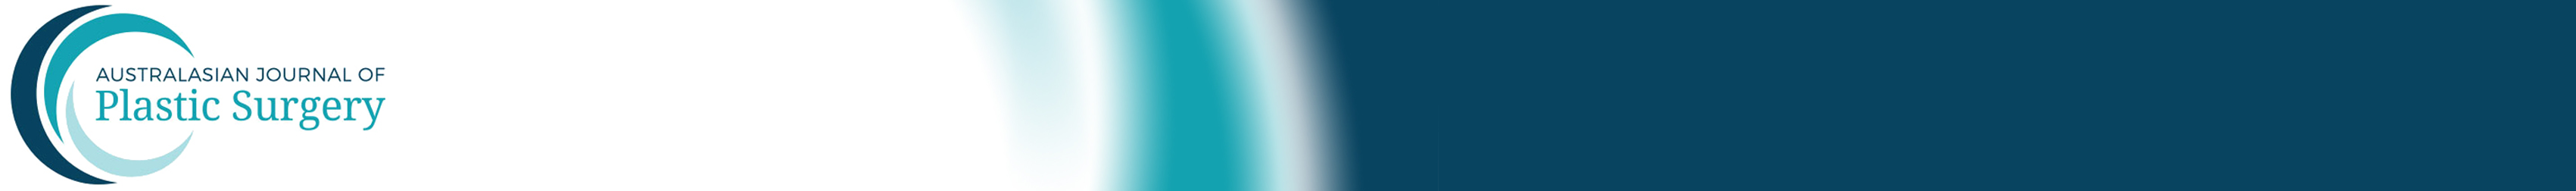 A long image showing a logo with the words 'Australasian Journal of Plastic Surgery) on the left side and three stripes of colour on the right fading out